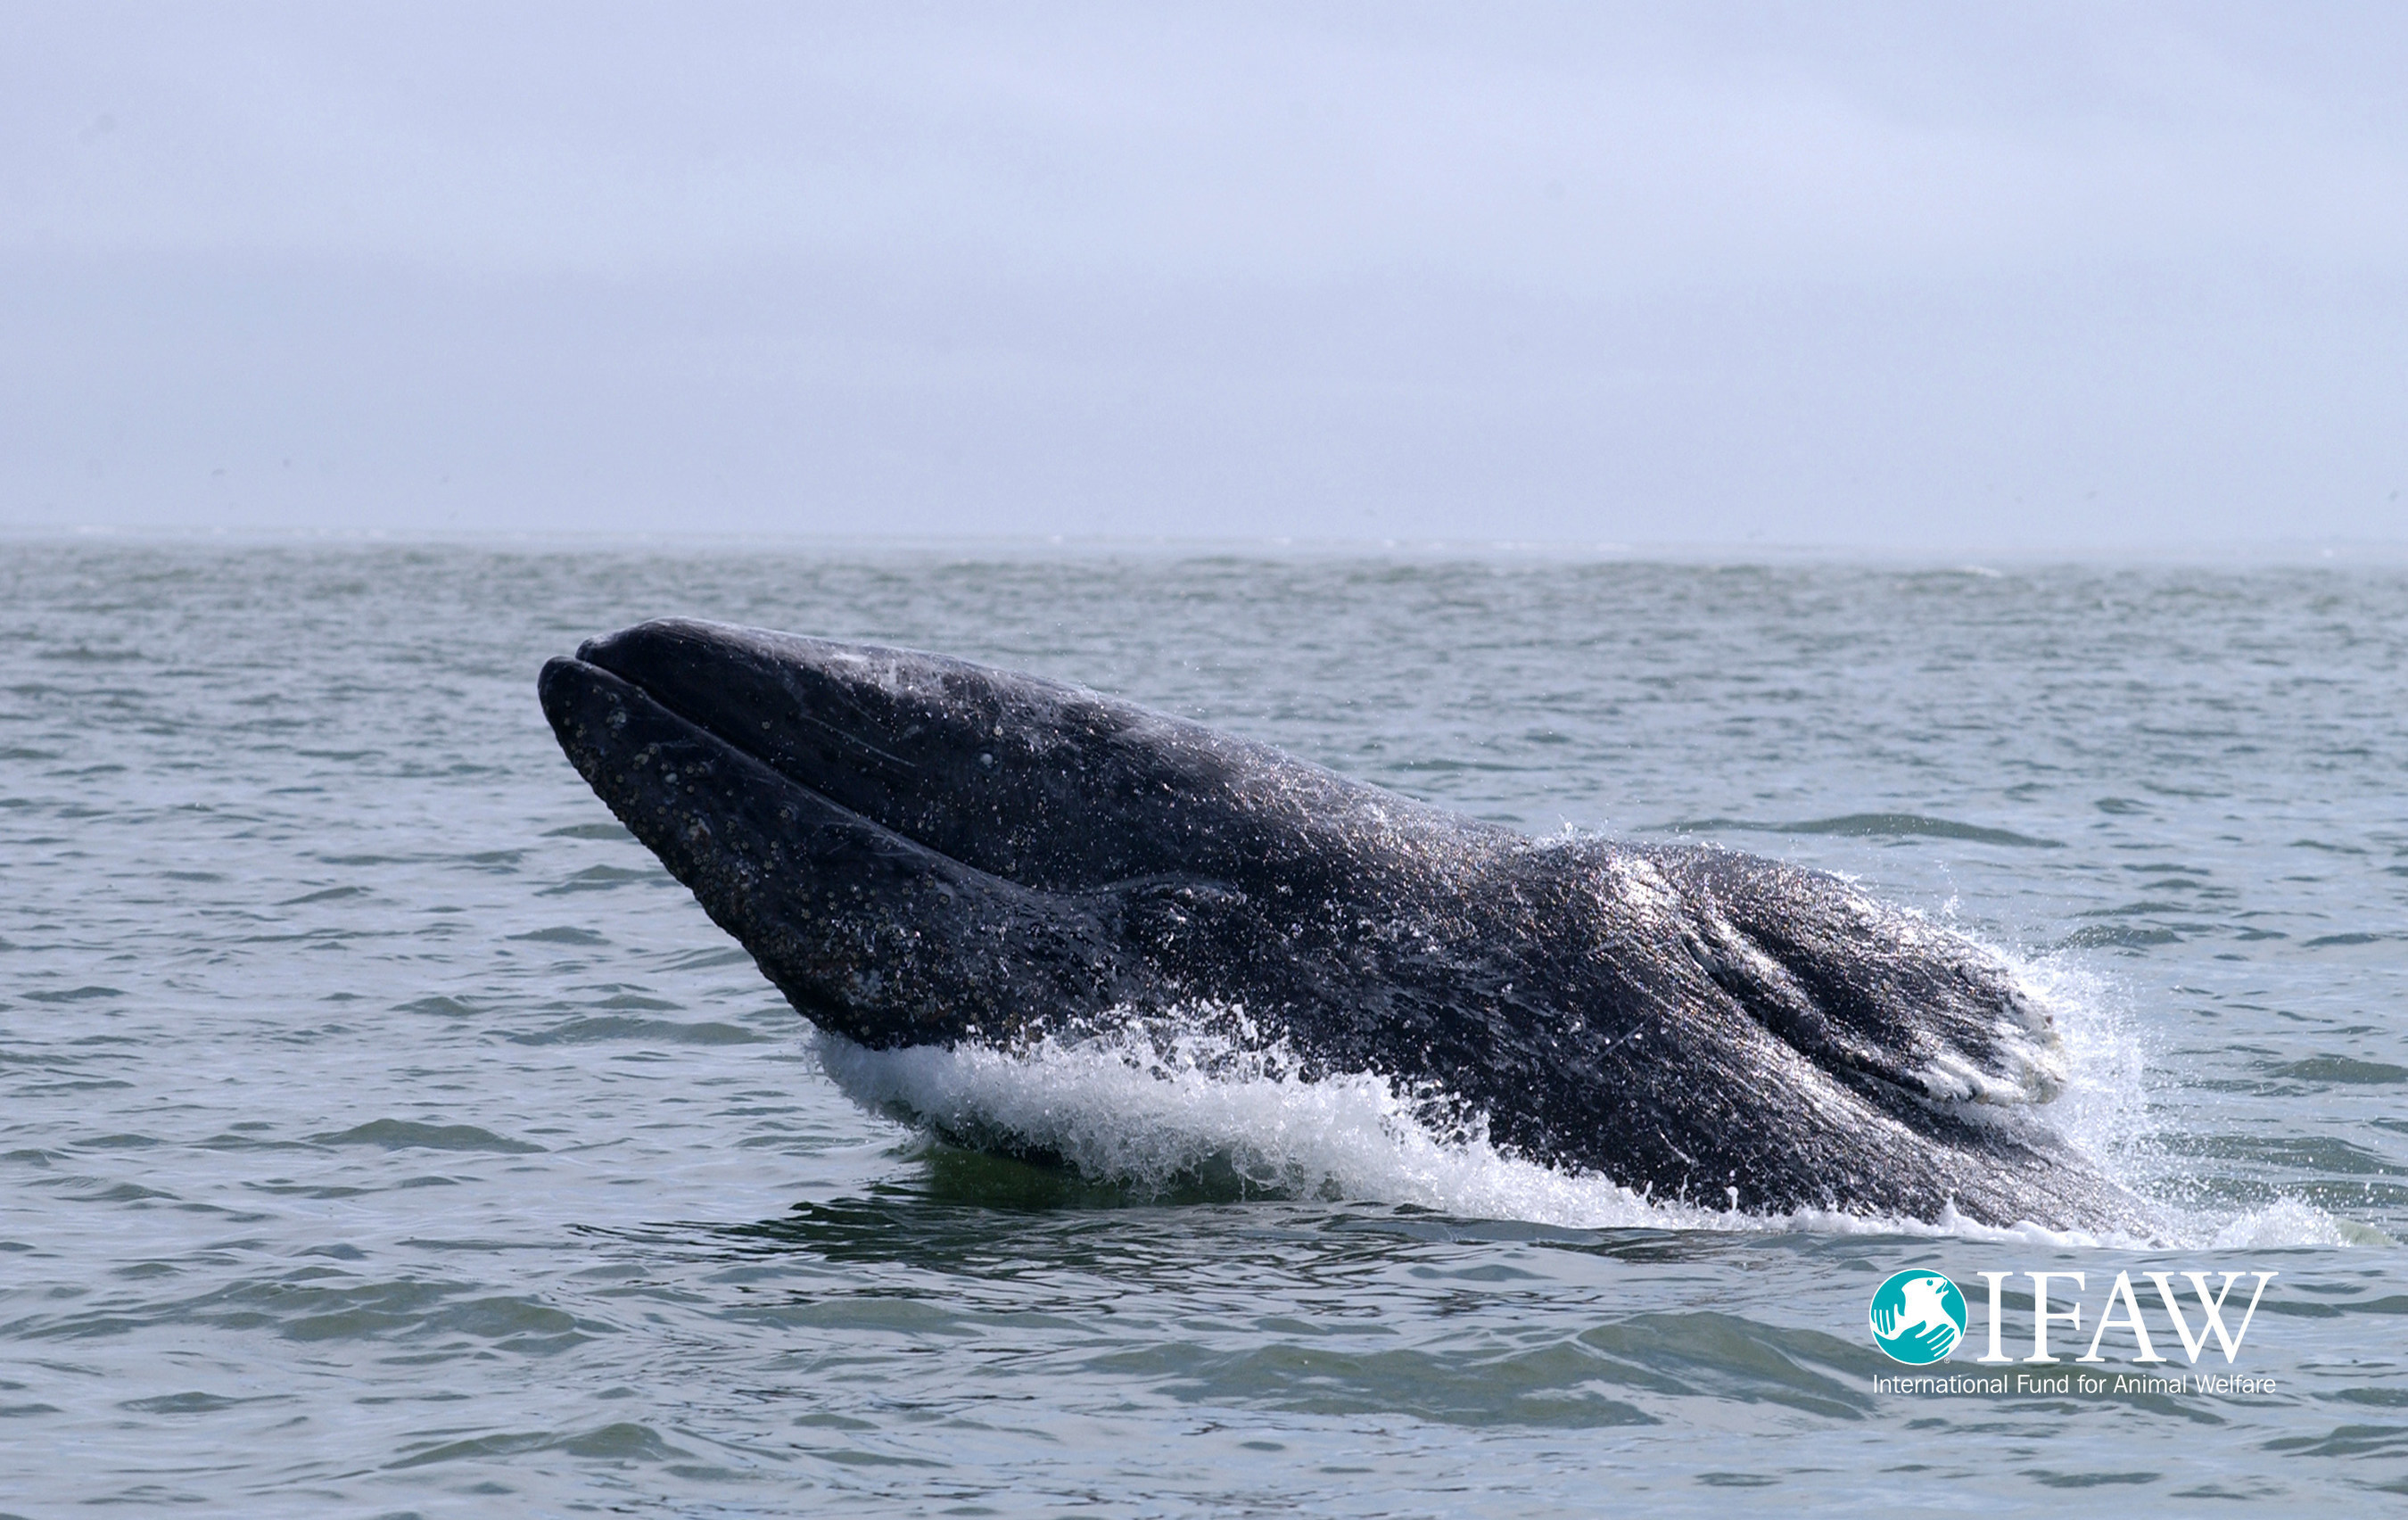 Calls for suspension of industrial activity which threatens critically endangered whales in their main feeding ground